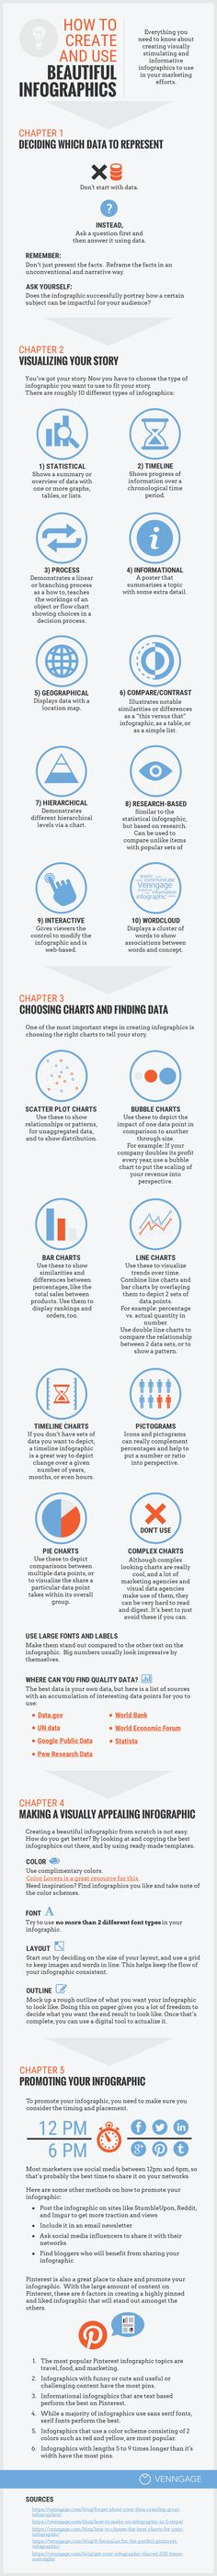 How to Plan, Create and Promote Your Infographics [Infographic]